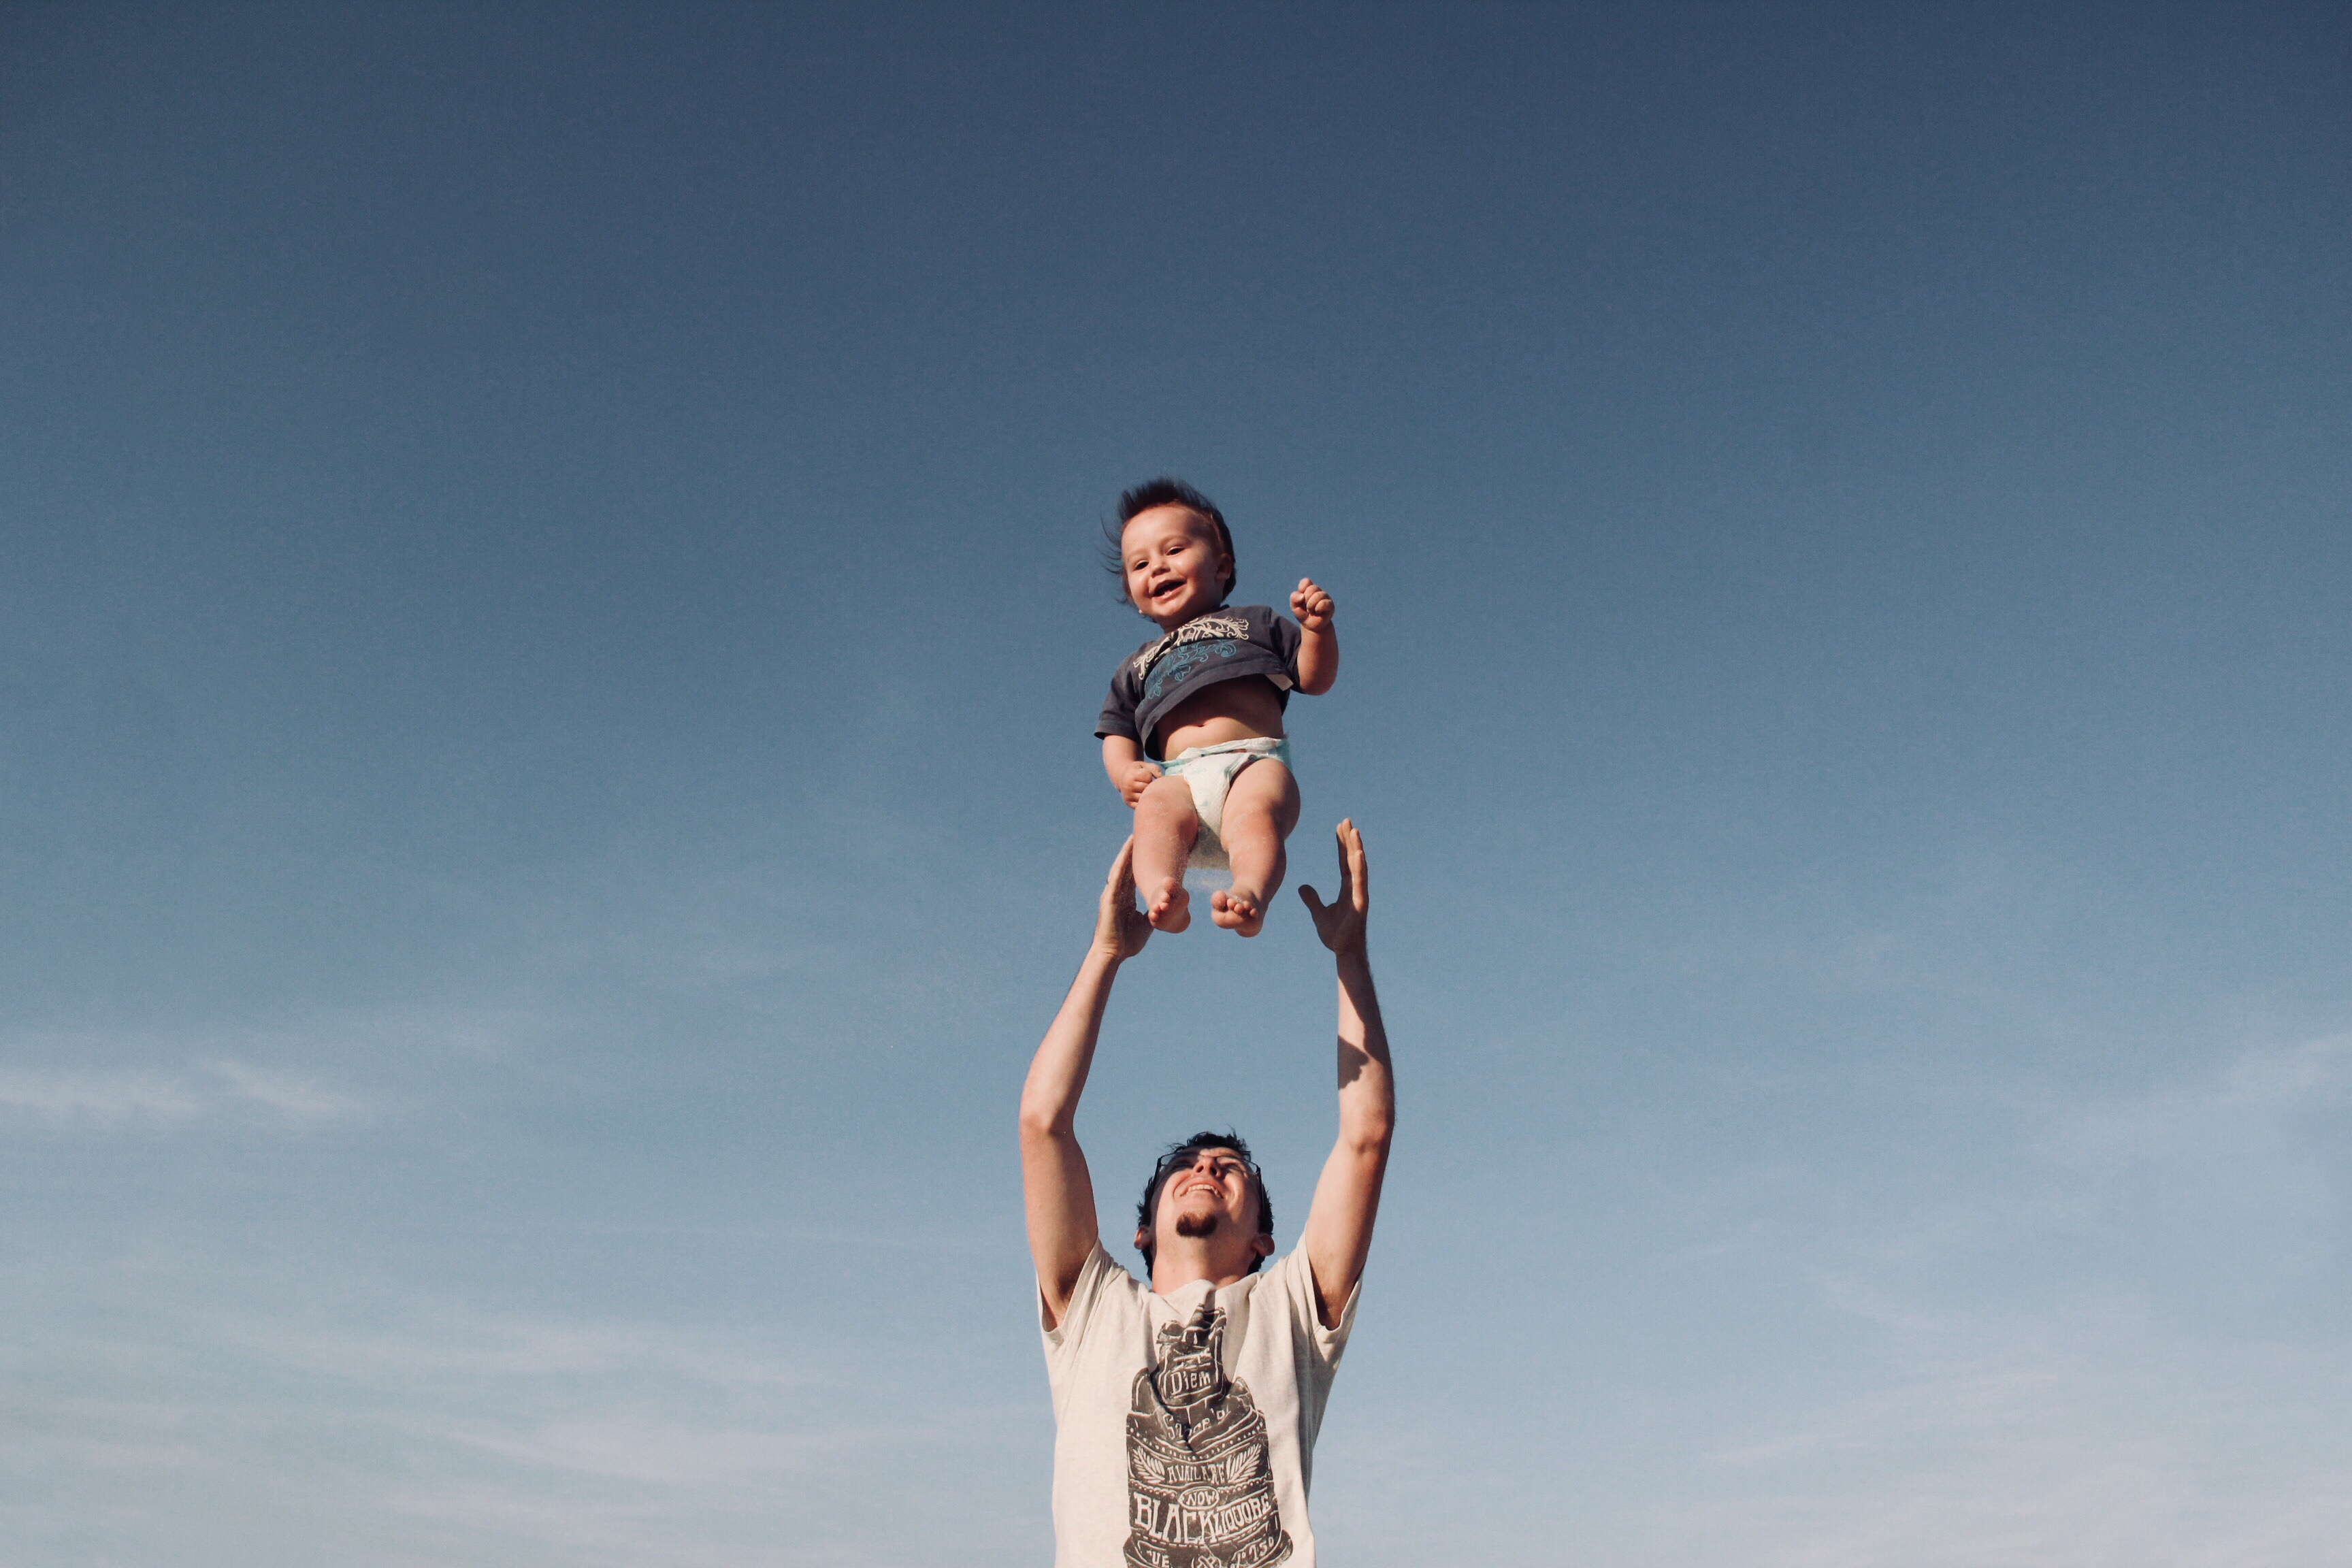 Canva-Photo-of-Man-in-Raising-Baby-Under-Blue-Sky